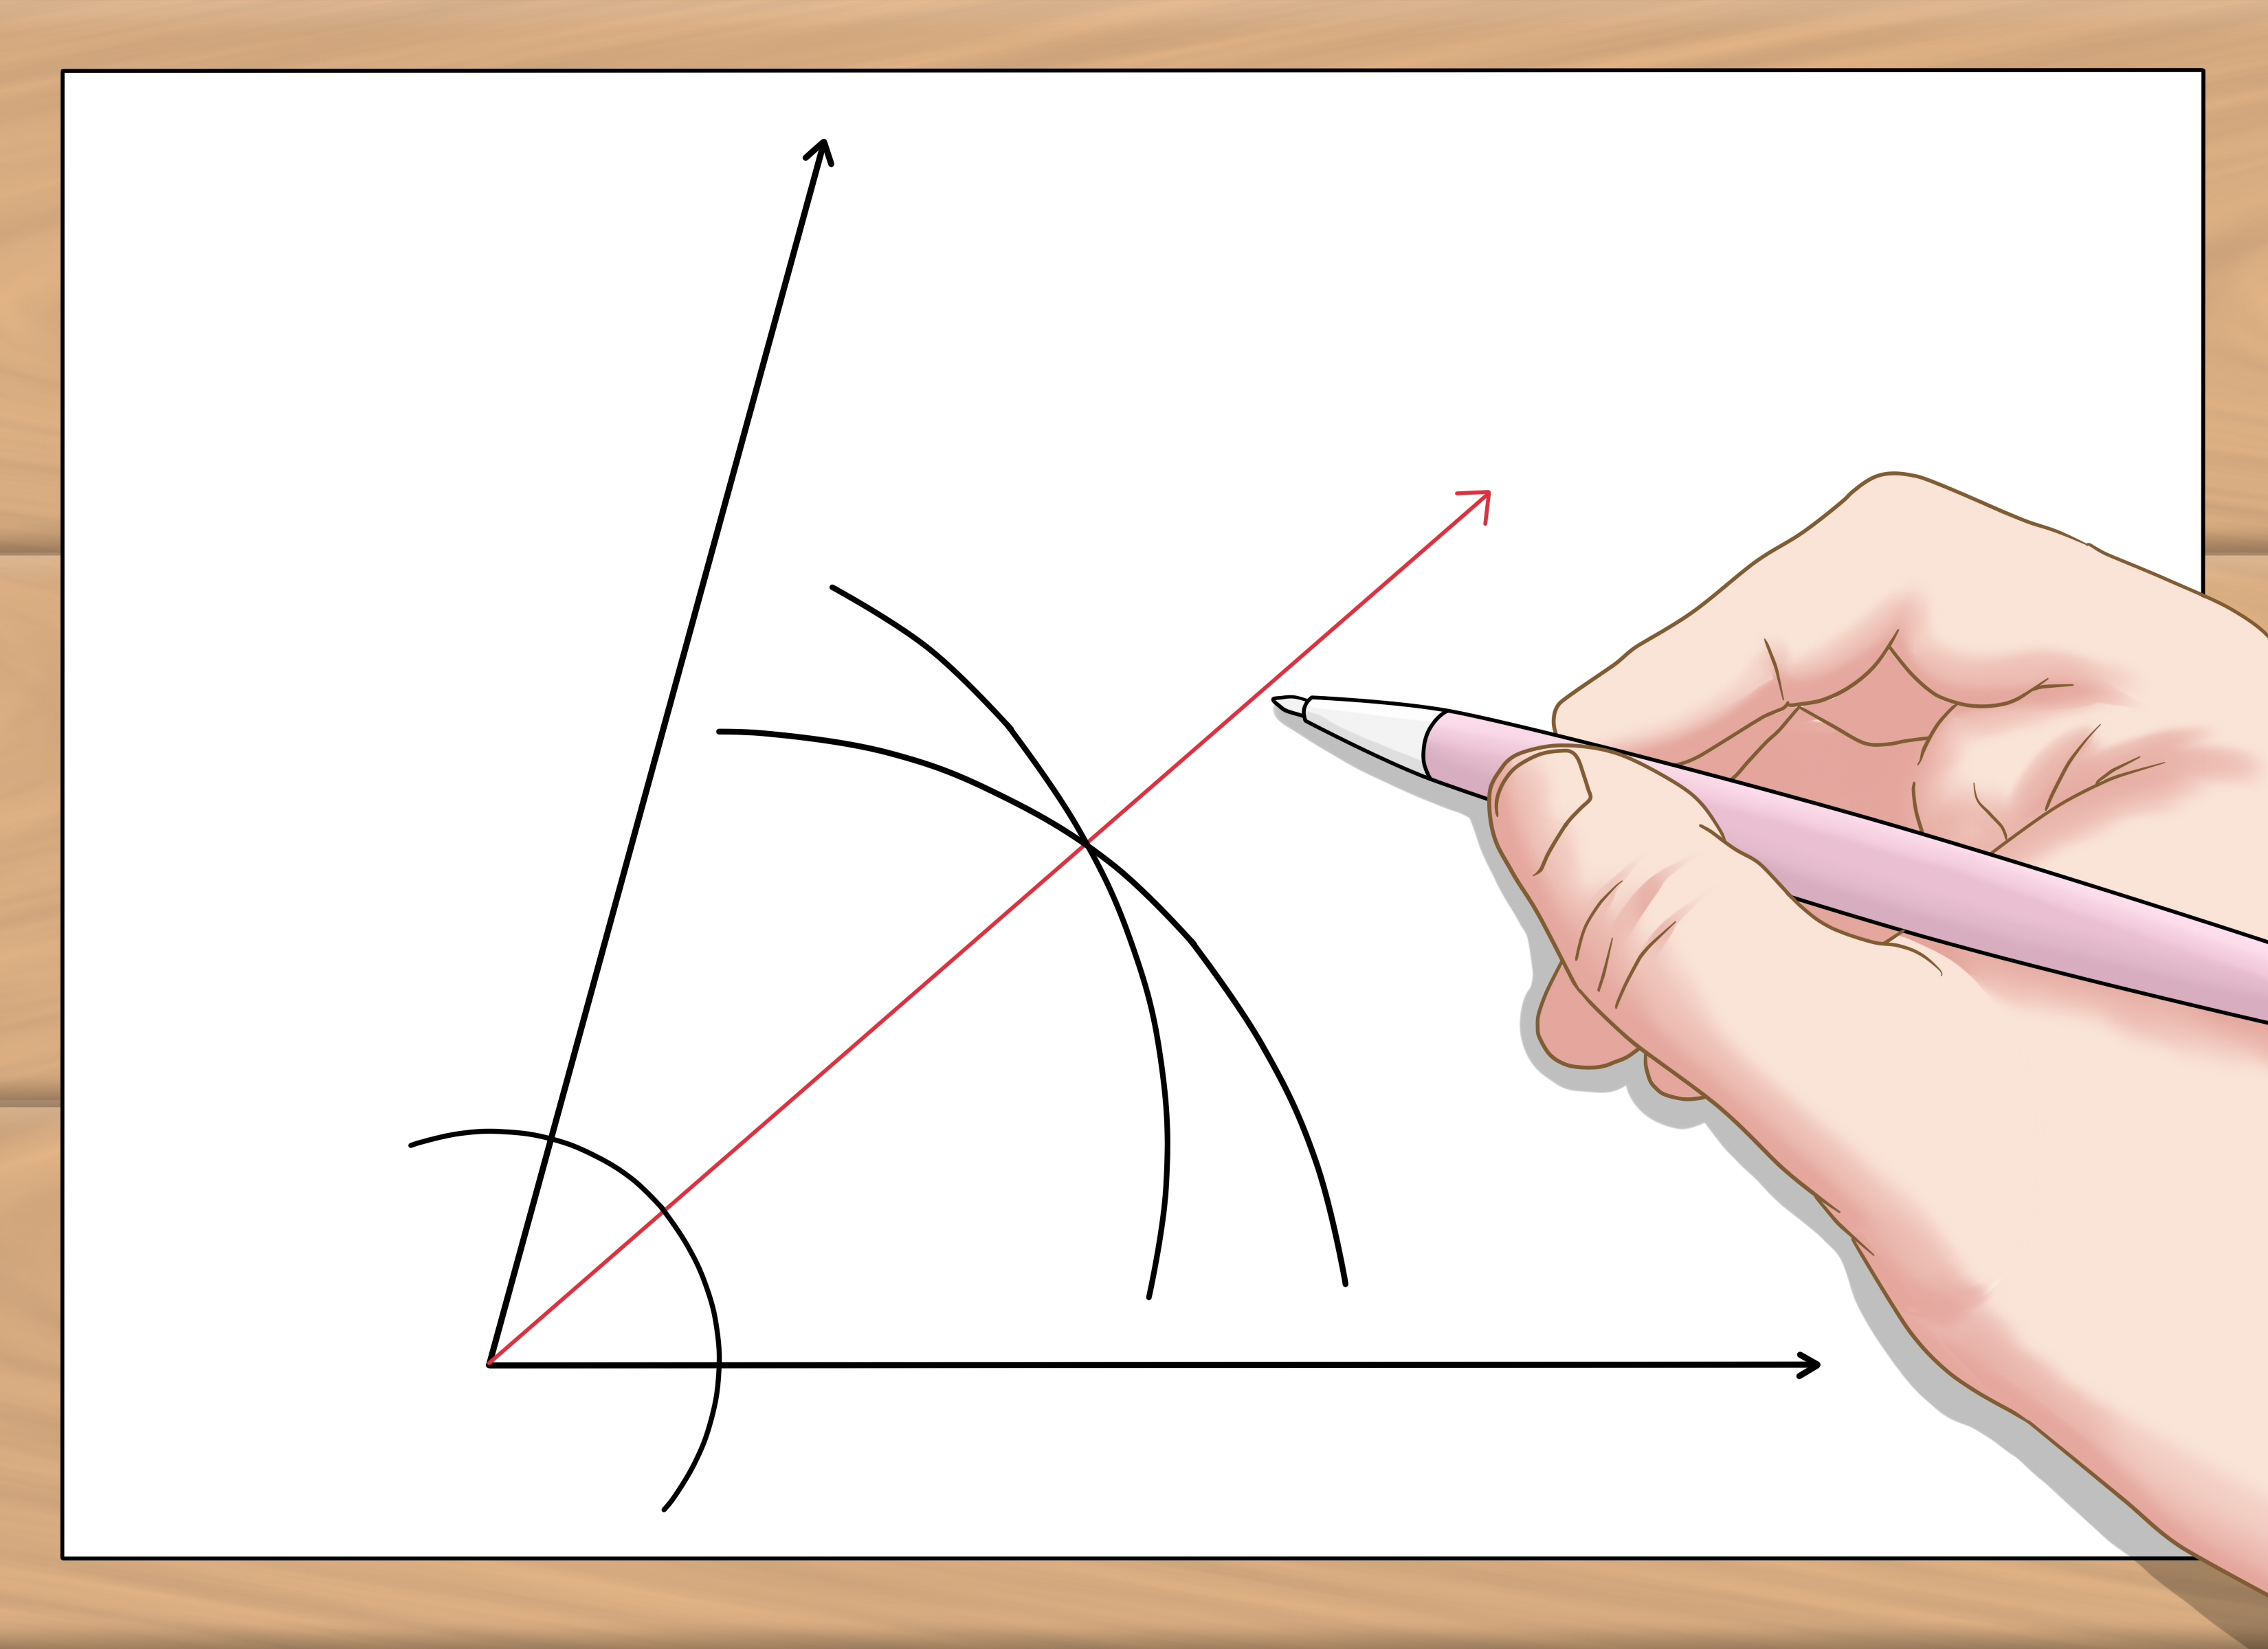 how to construct a bisector of a given